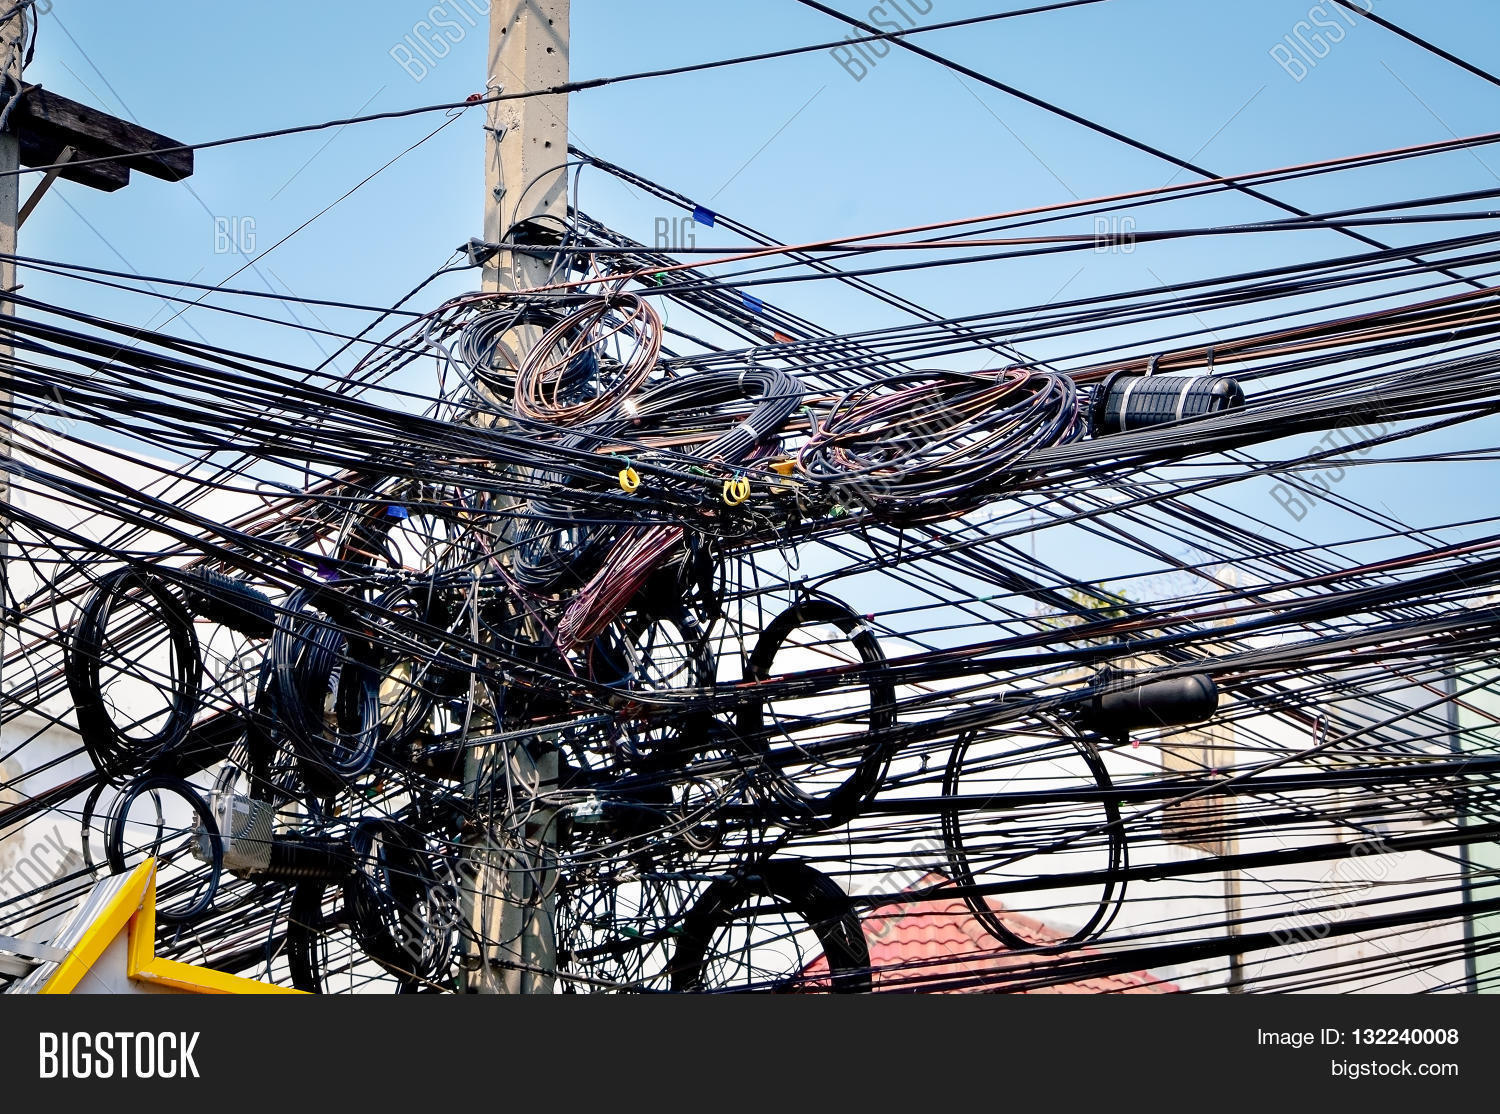 Chaos Cables Wires On Image & Photo (Free Trial) | Bigstock